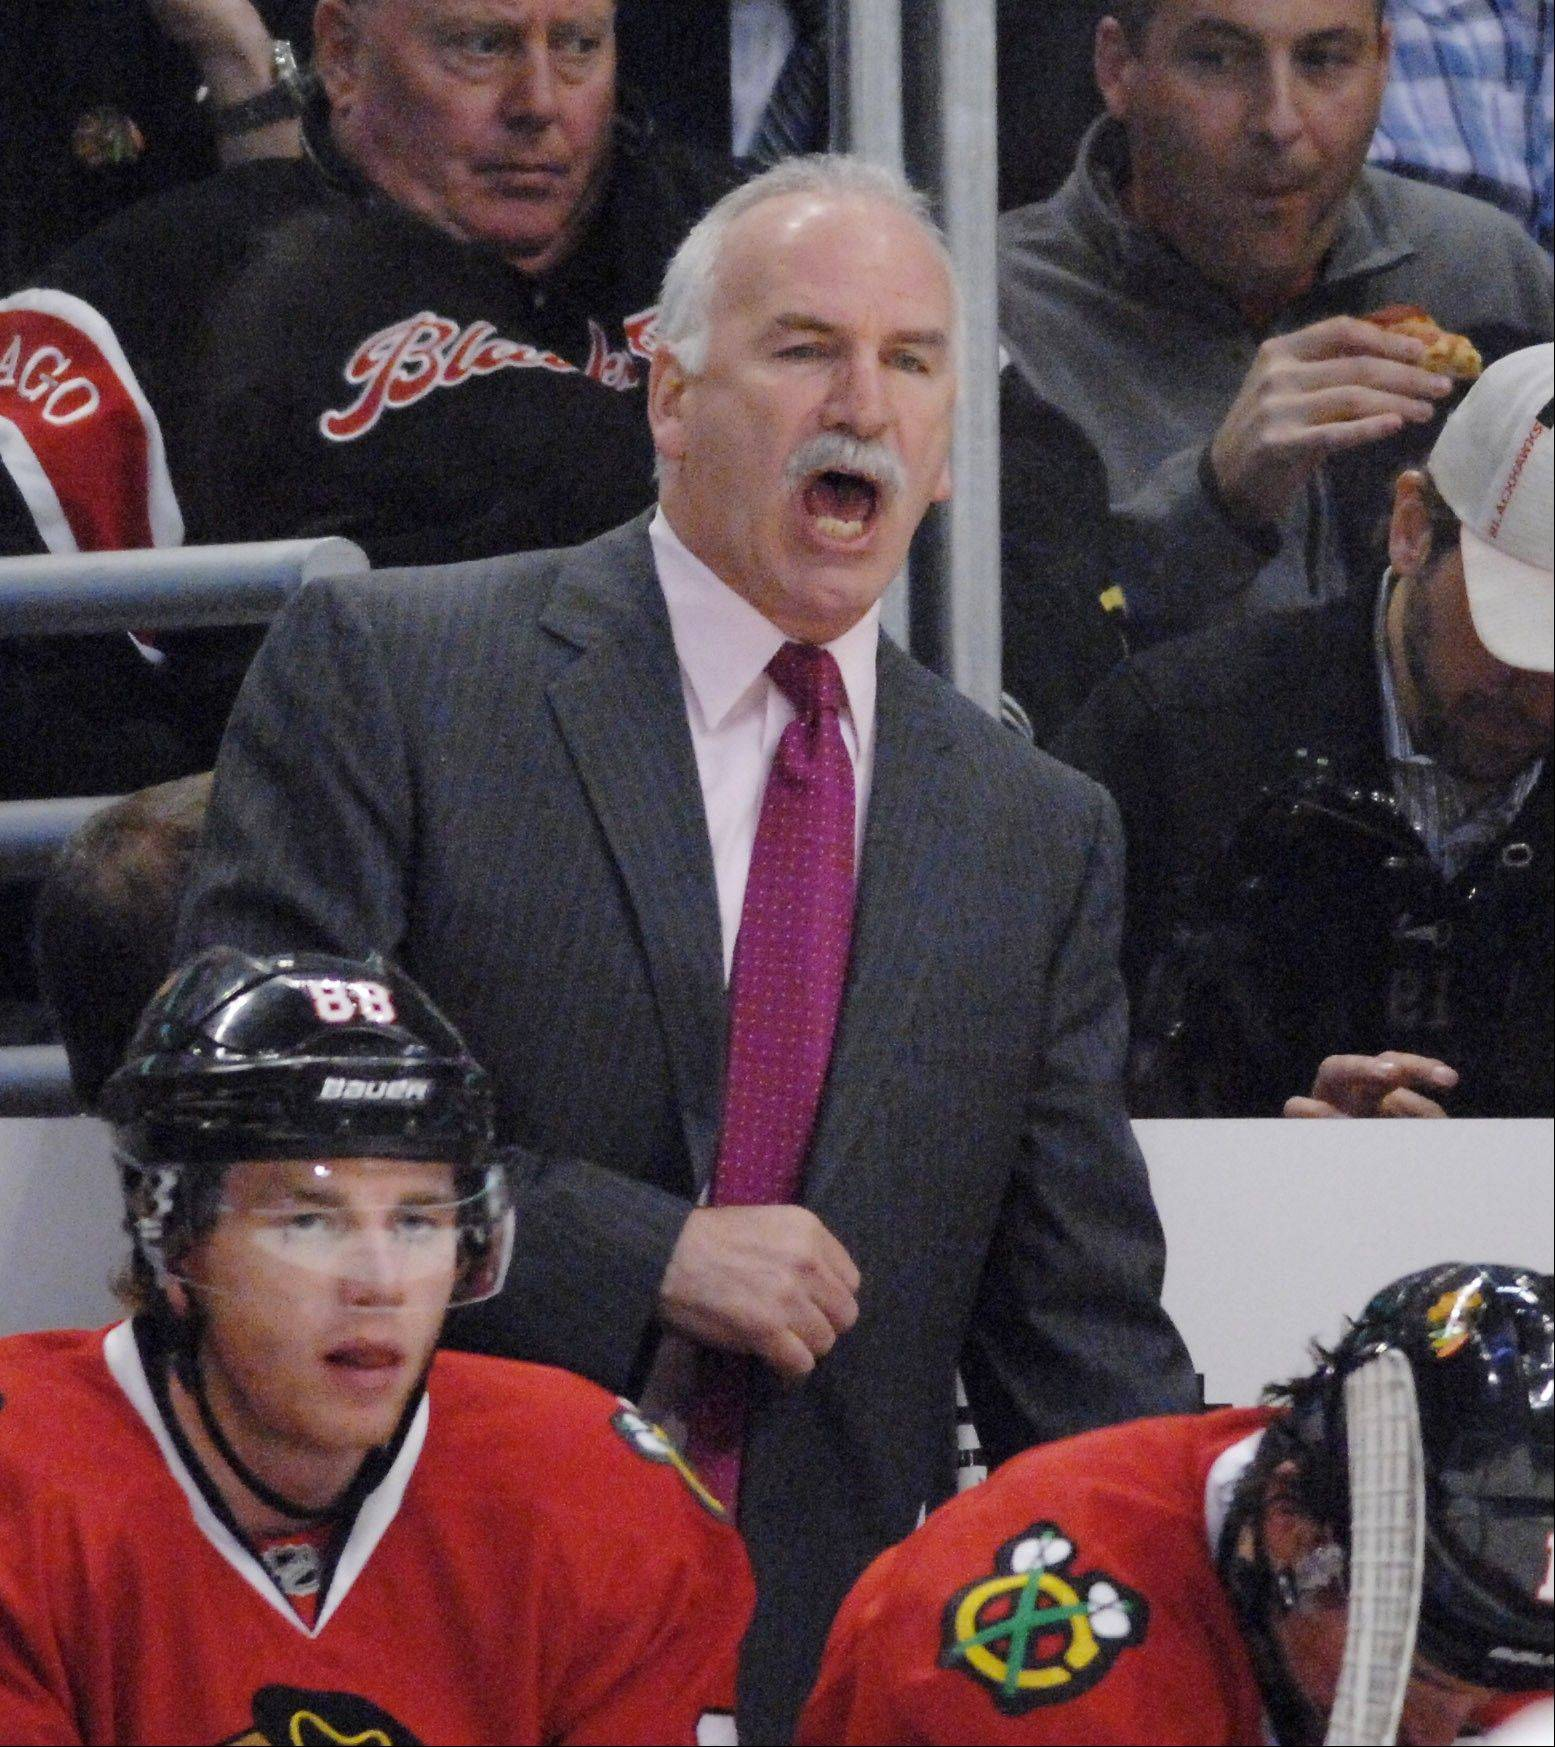 Blackhawks coach Joel Quenneville continues to believe his team can play a puck-possession style built around a great offense. That's contrary to what most NHL teams are doing.